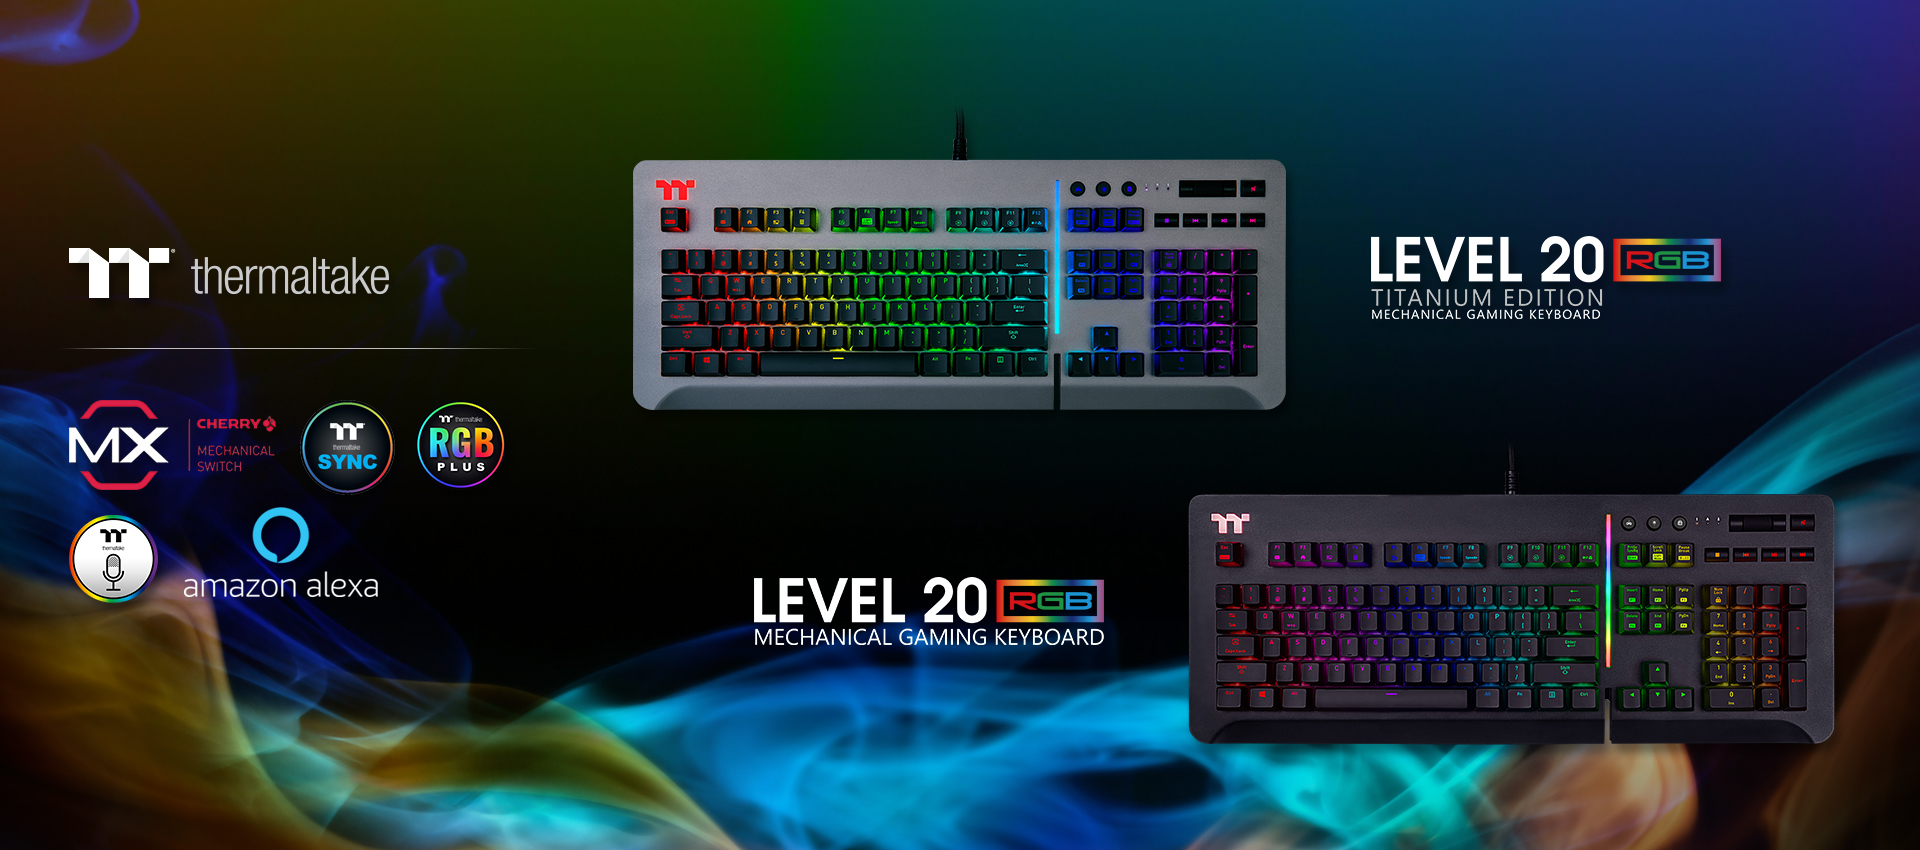 Level 20 RGB Titanium Gaming Keyboard (Speed Silver)